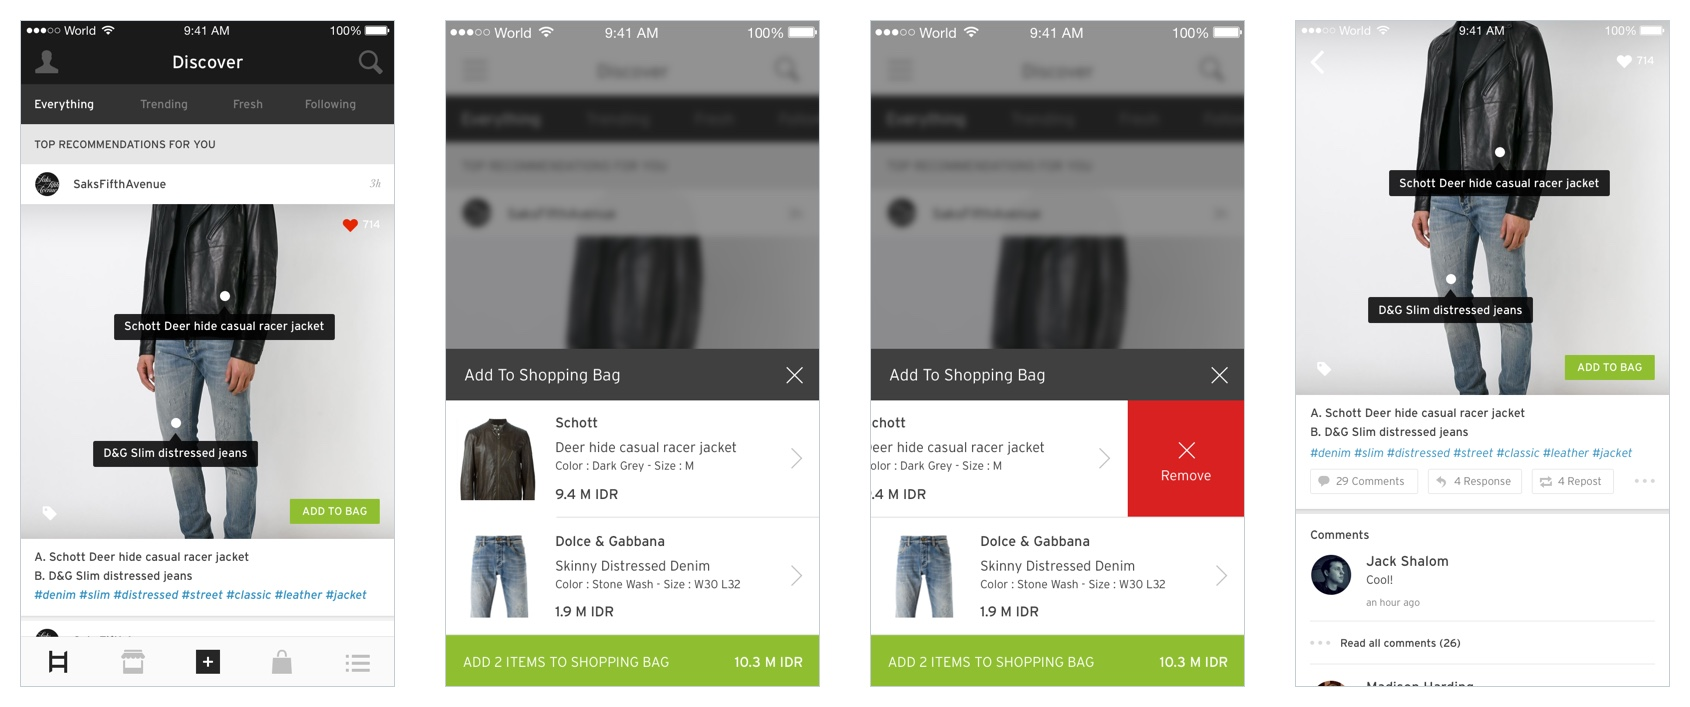 Hood Shopping User Experience and Interface Design